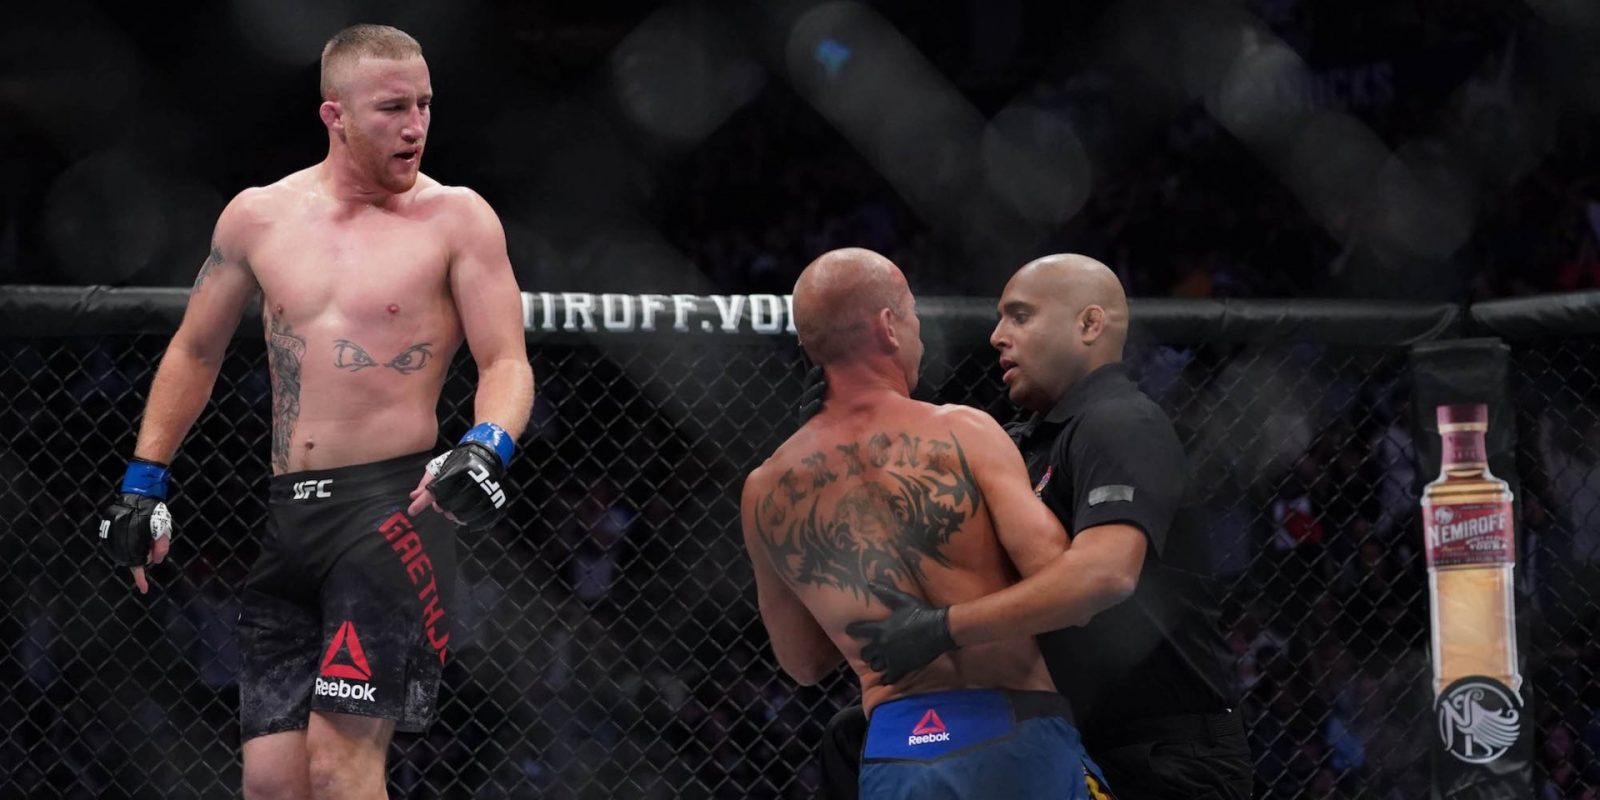 Justin Gaethje destroyed Donald 'Cowboy' Cerrone in a single round, then said he'd 'f— up' Conor McGregor